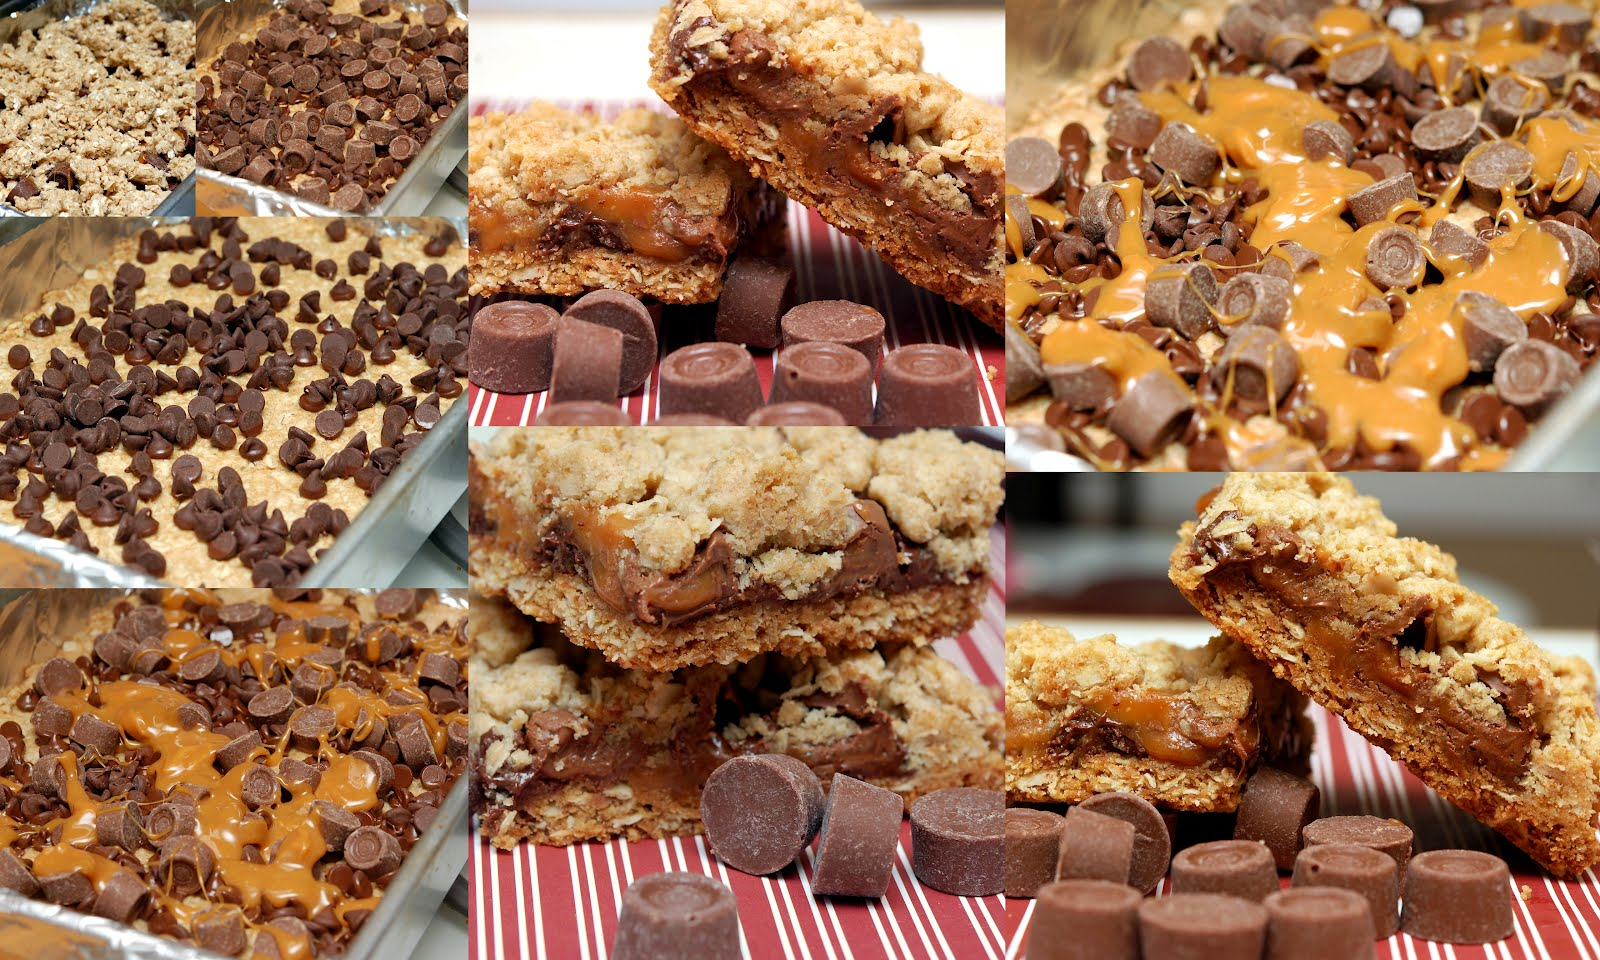 Hugs & CookiesXOXO: CARMELITA BARS STUFFED WITH ROLOS!!!